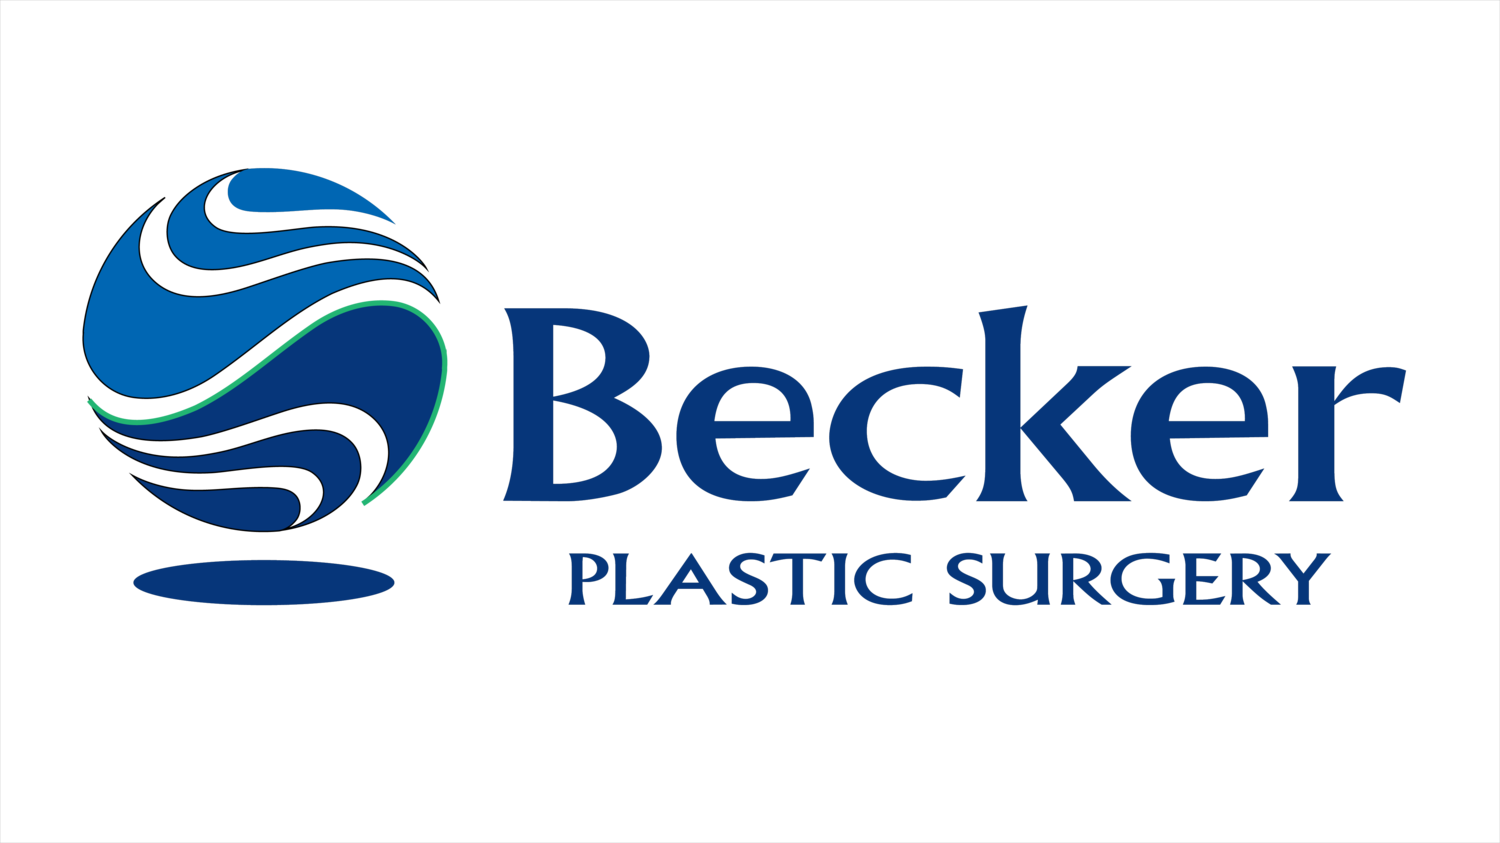 Becker Plastic Surgery